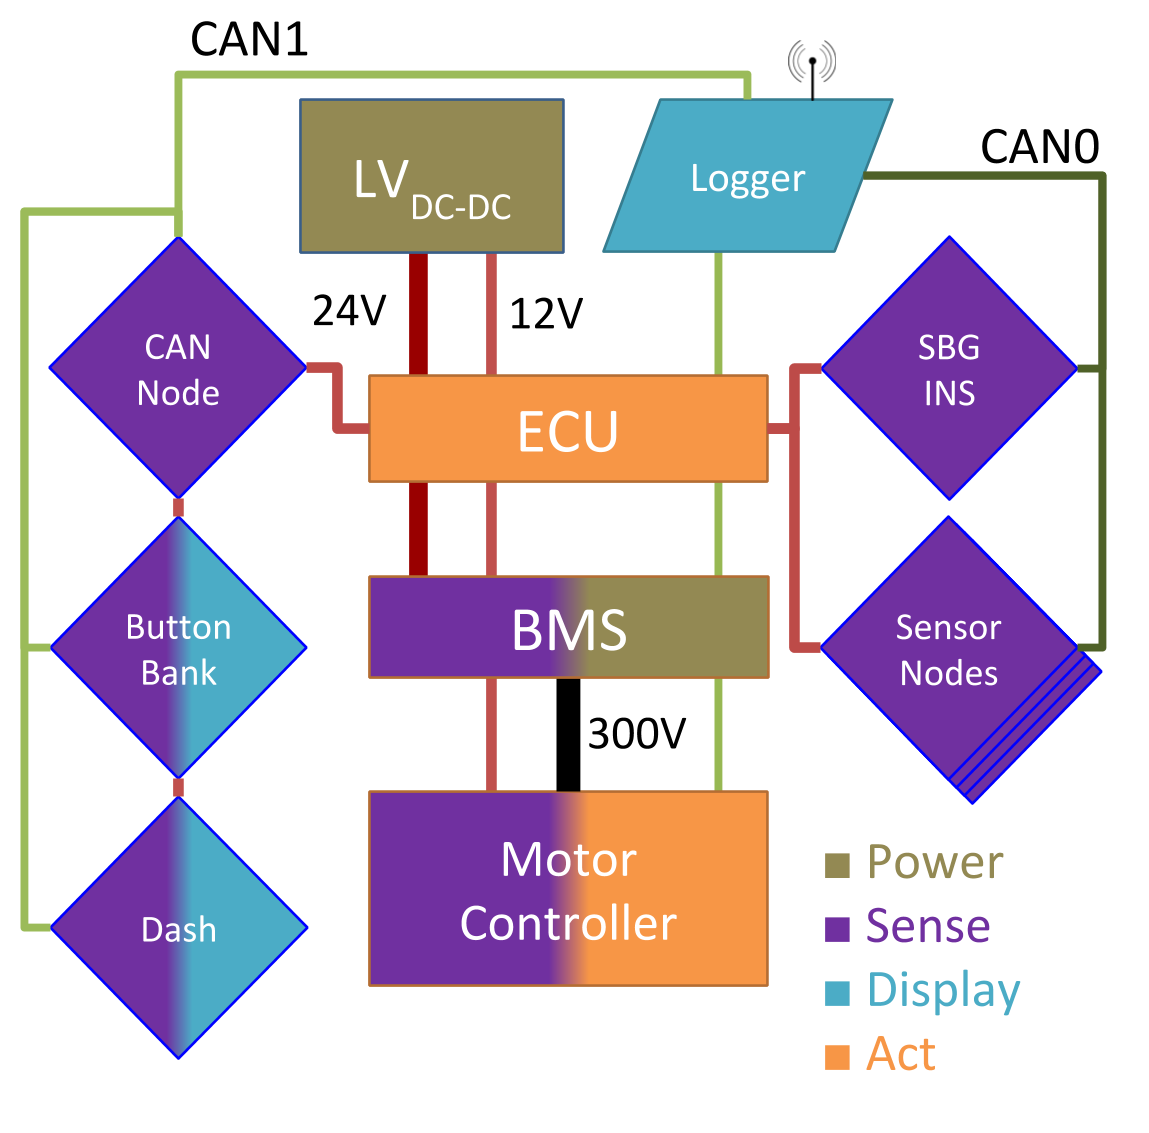 Overview of MY18's low voltage system